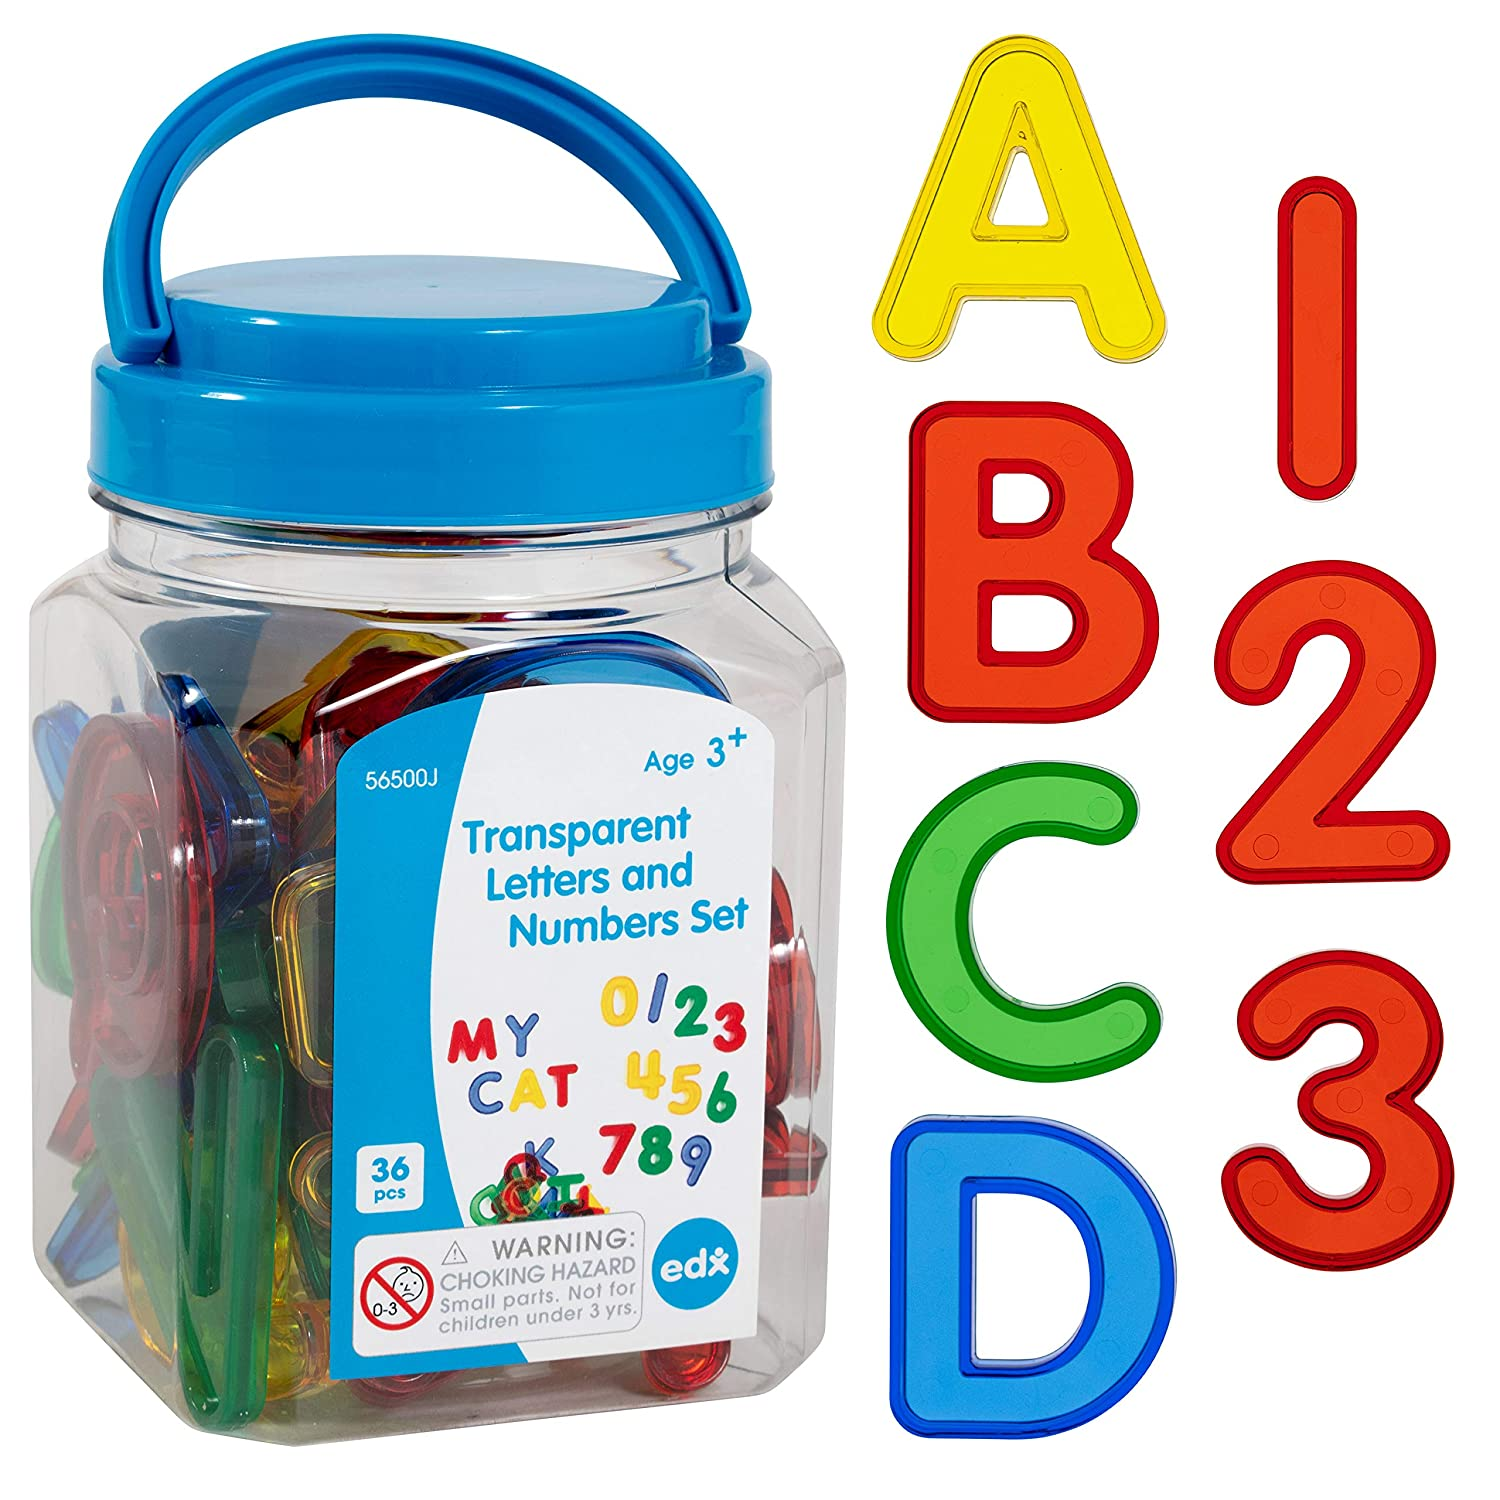 Transparent Letters & Numbers Set, Mini Jar